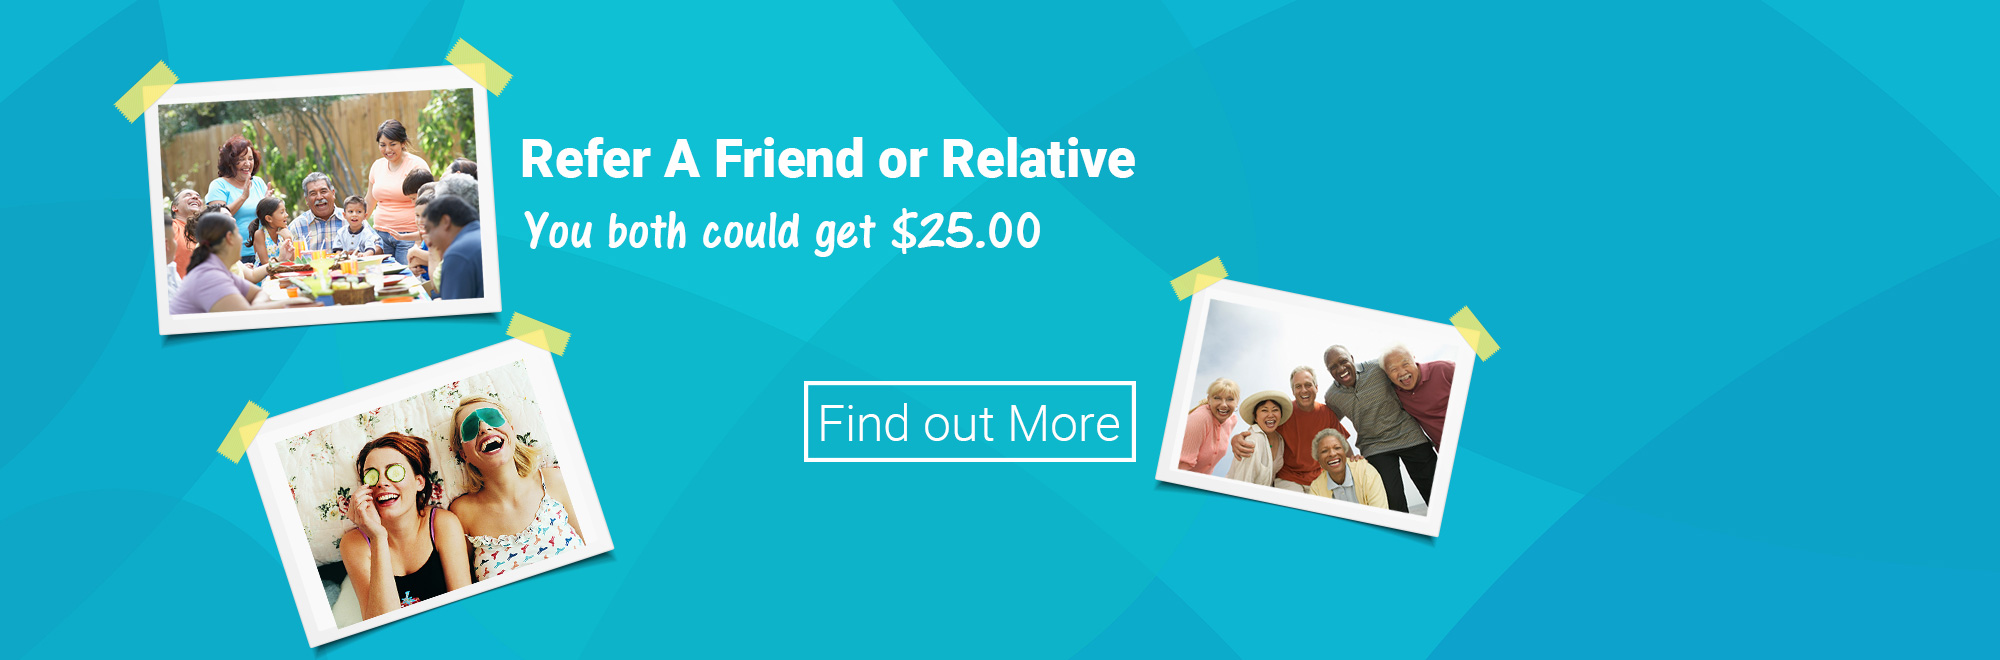 Refer a Friend or Relative!